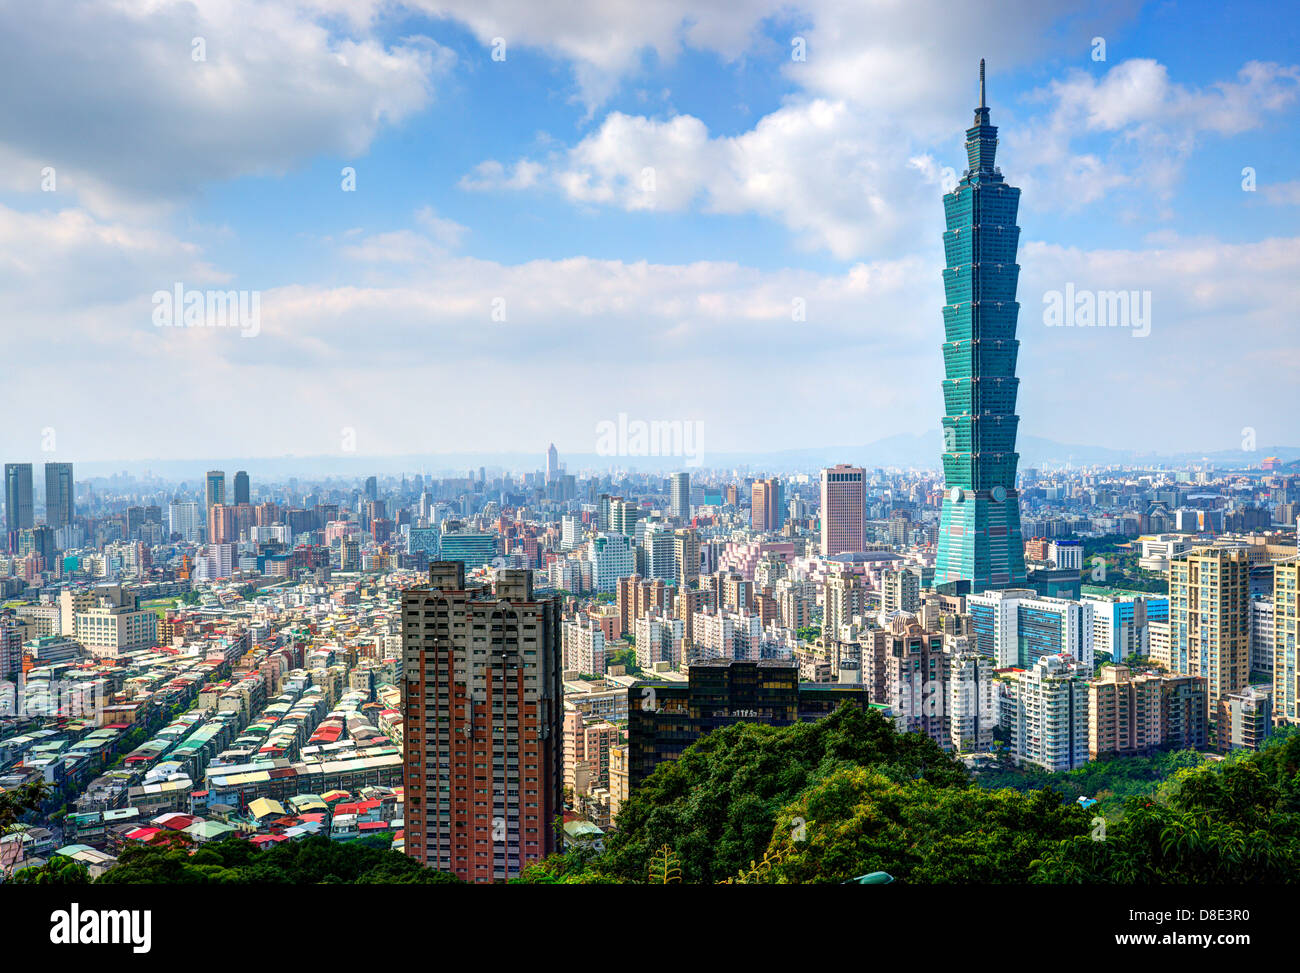 Skyline of Xinyi District in downtown Taipei, Taiwan. - Stock Image